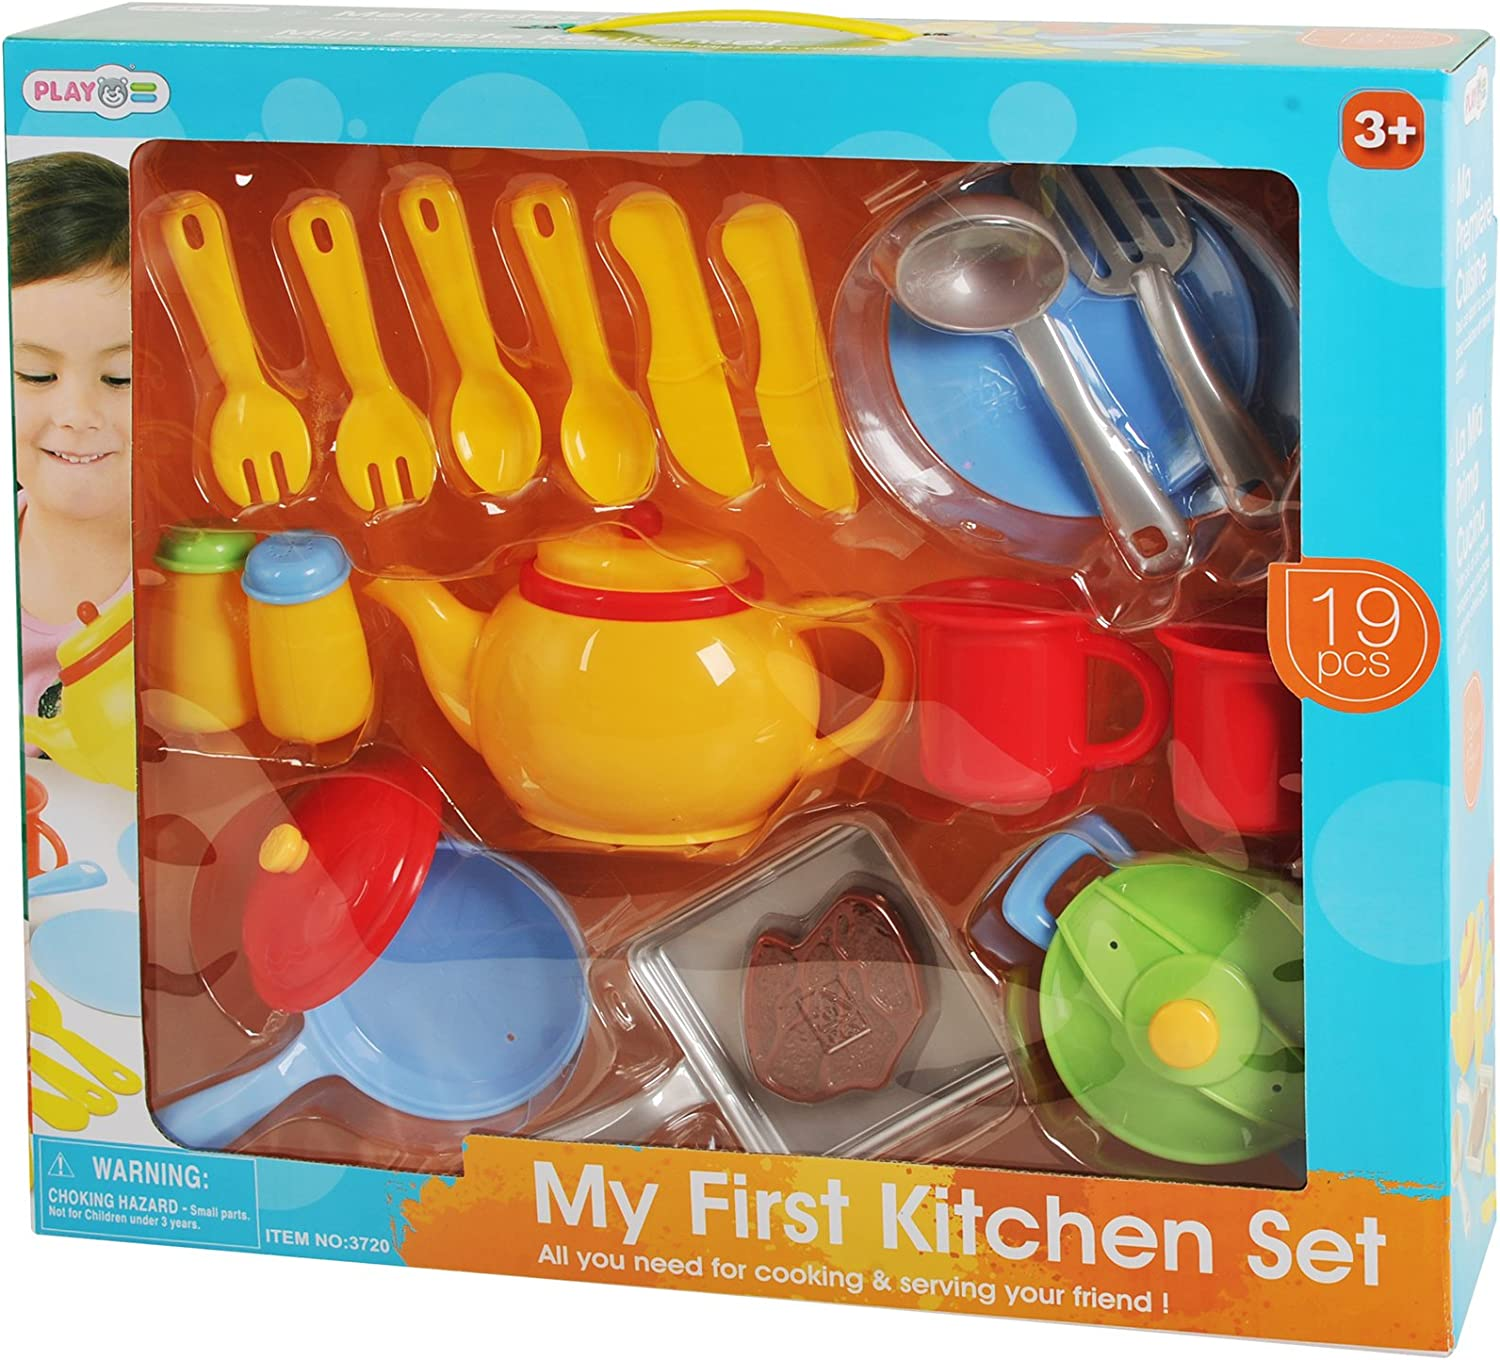 19 Pc My First Kitchen Playset Knife Forks Play Utensils Salt And Pepper Shakers Realistic Plastic Toy Cutlery Toy Cooking Accessories Toys Games